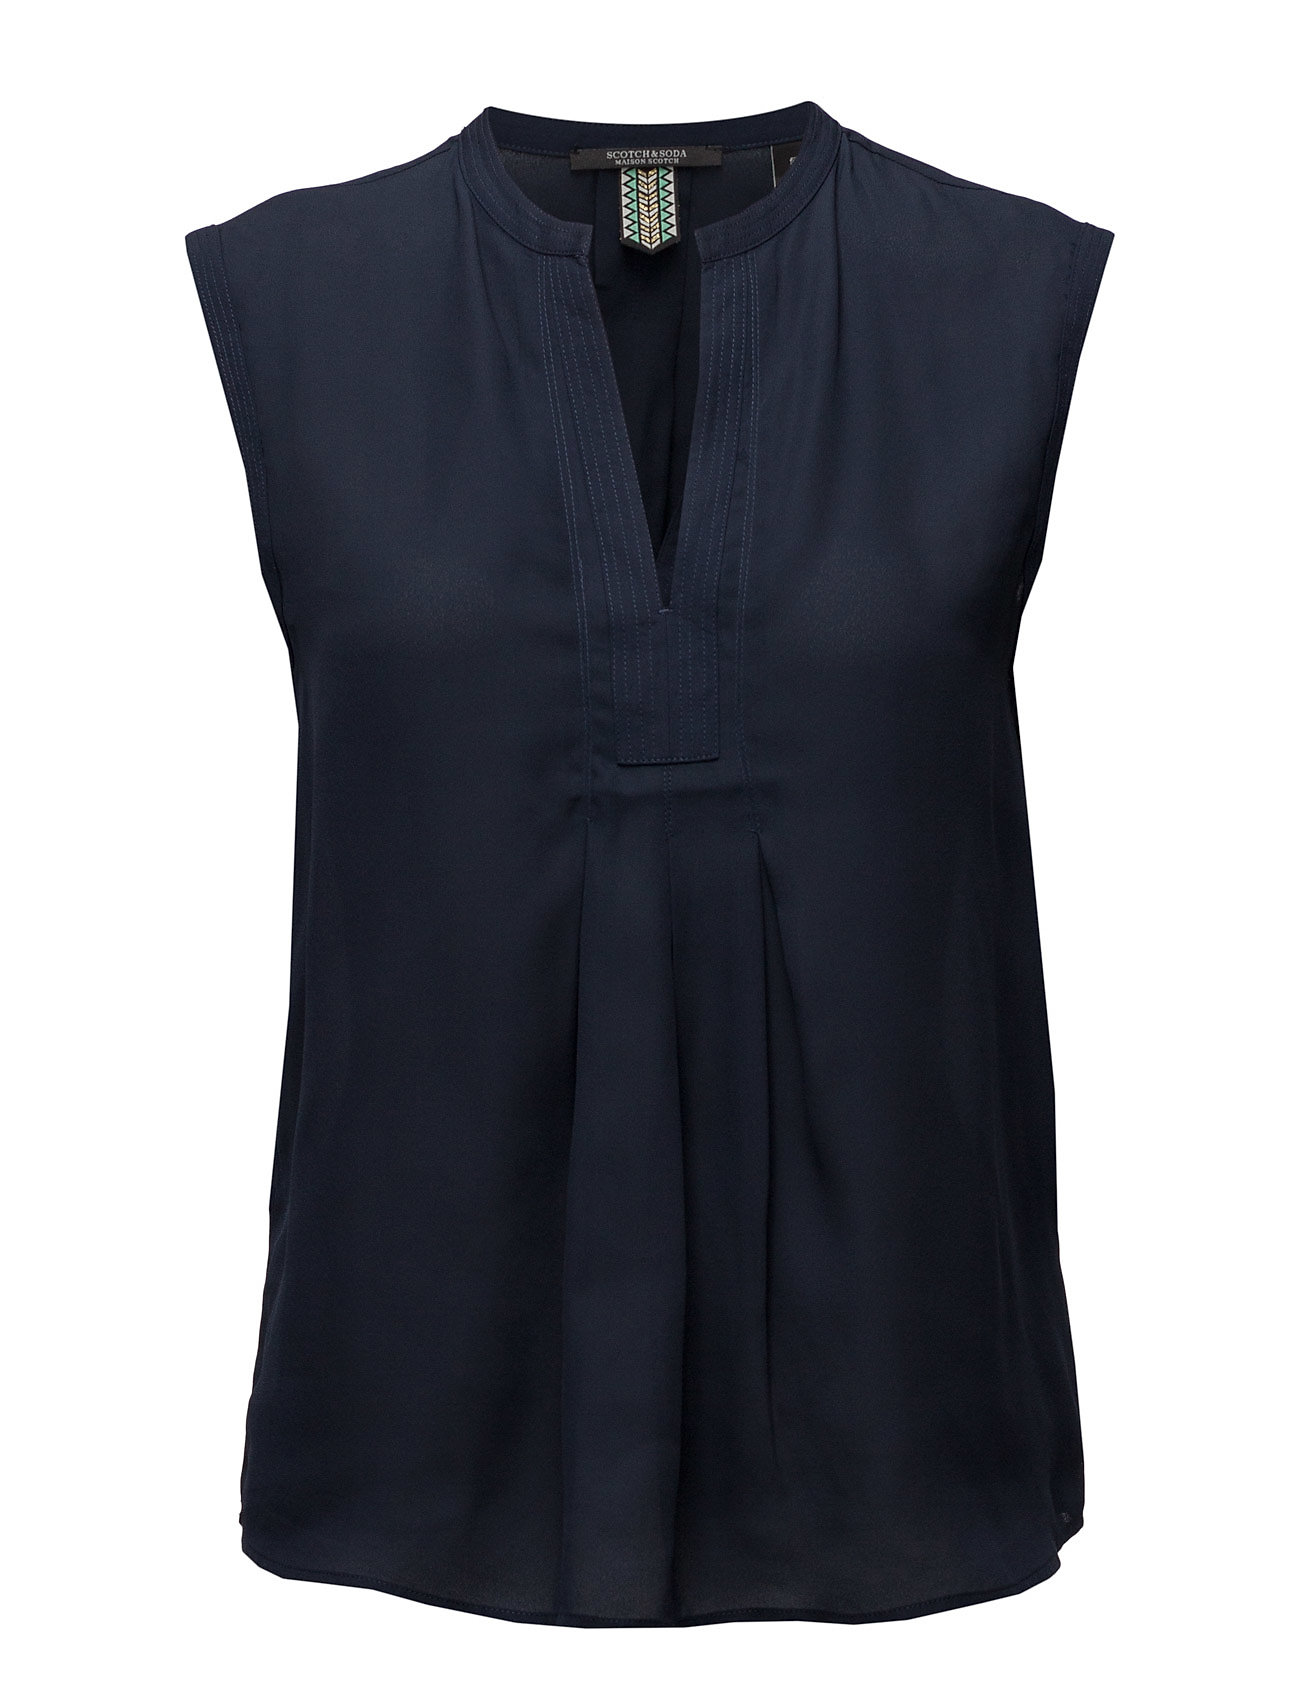 Silky Feel V-Neck Sleeveless Top With Pleat Details